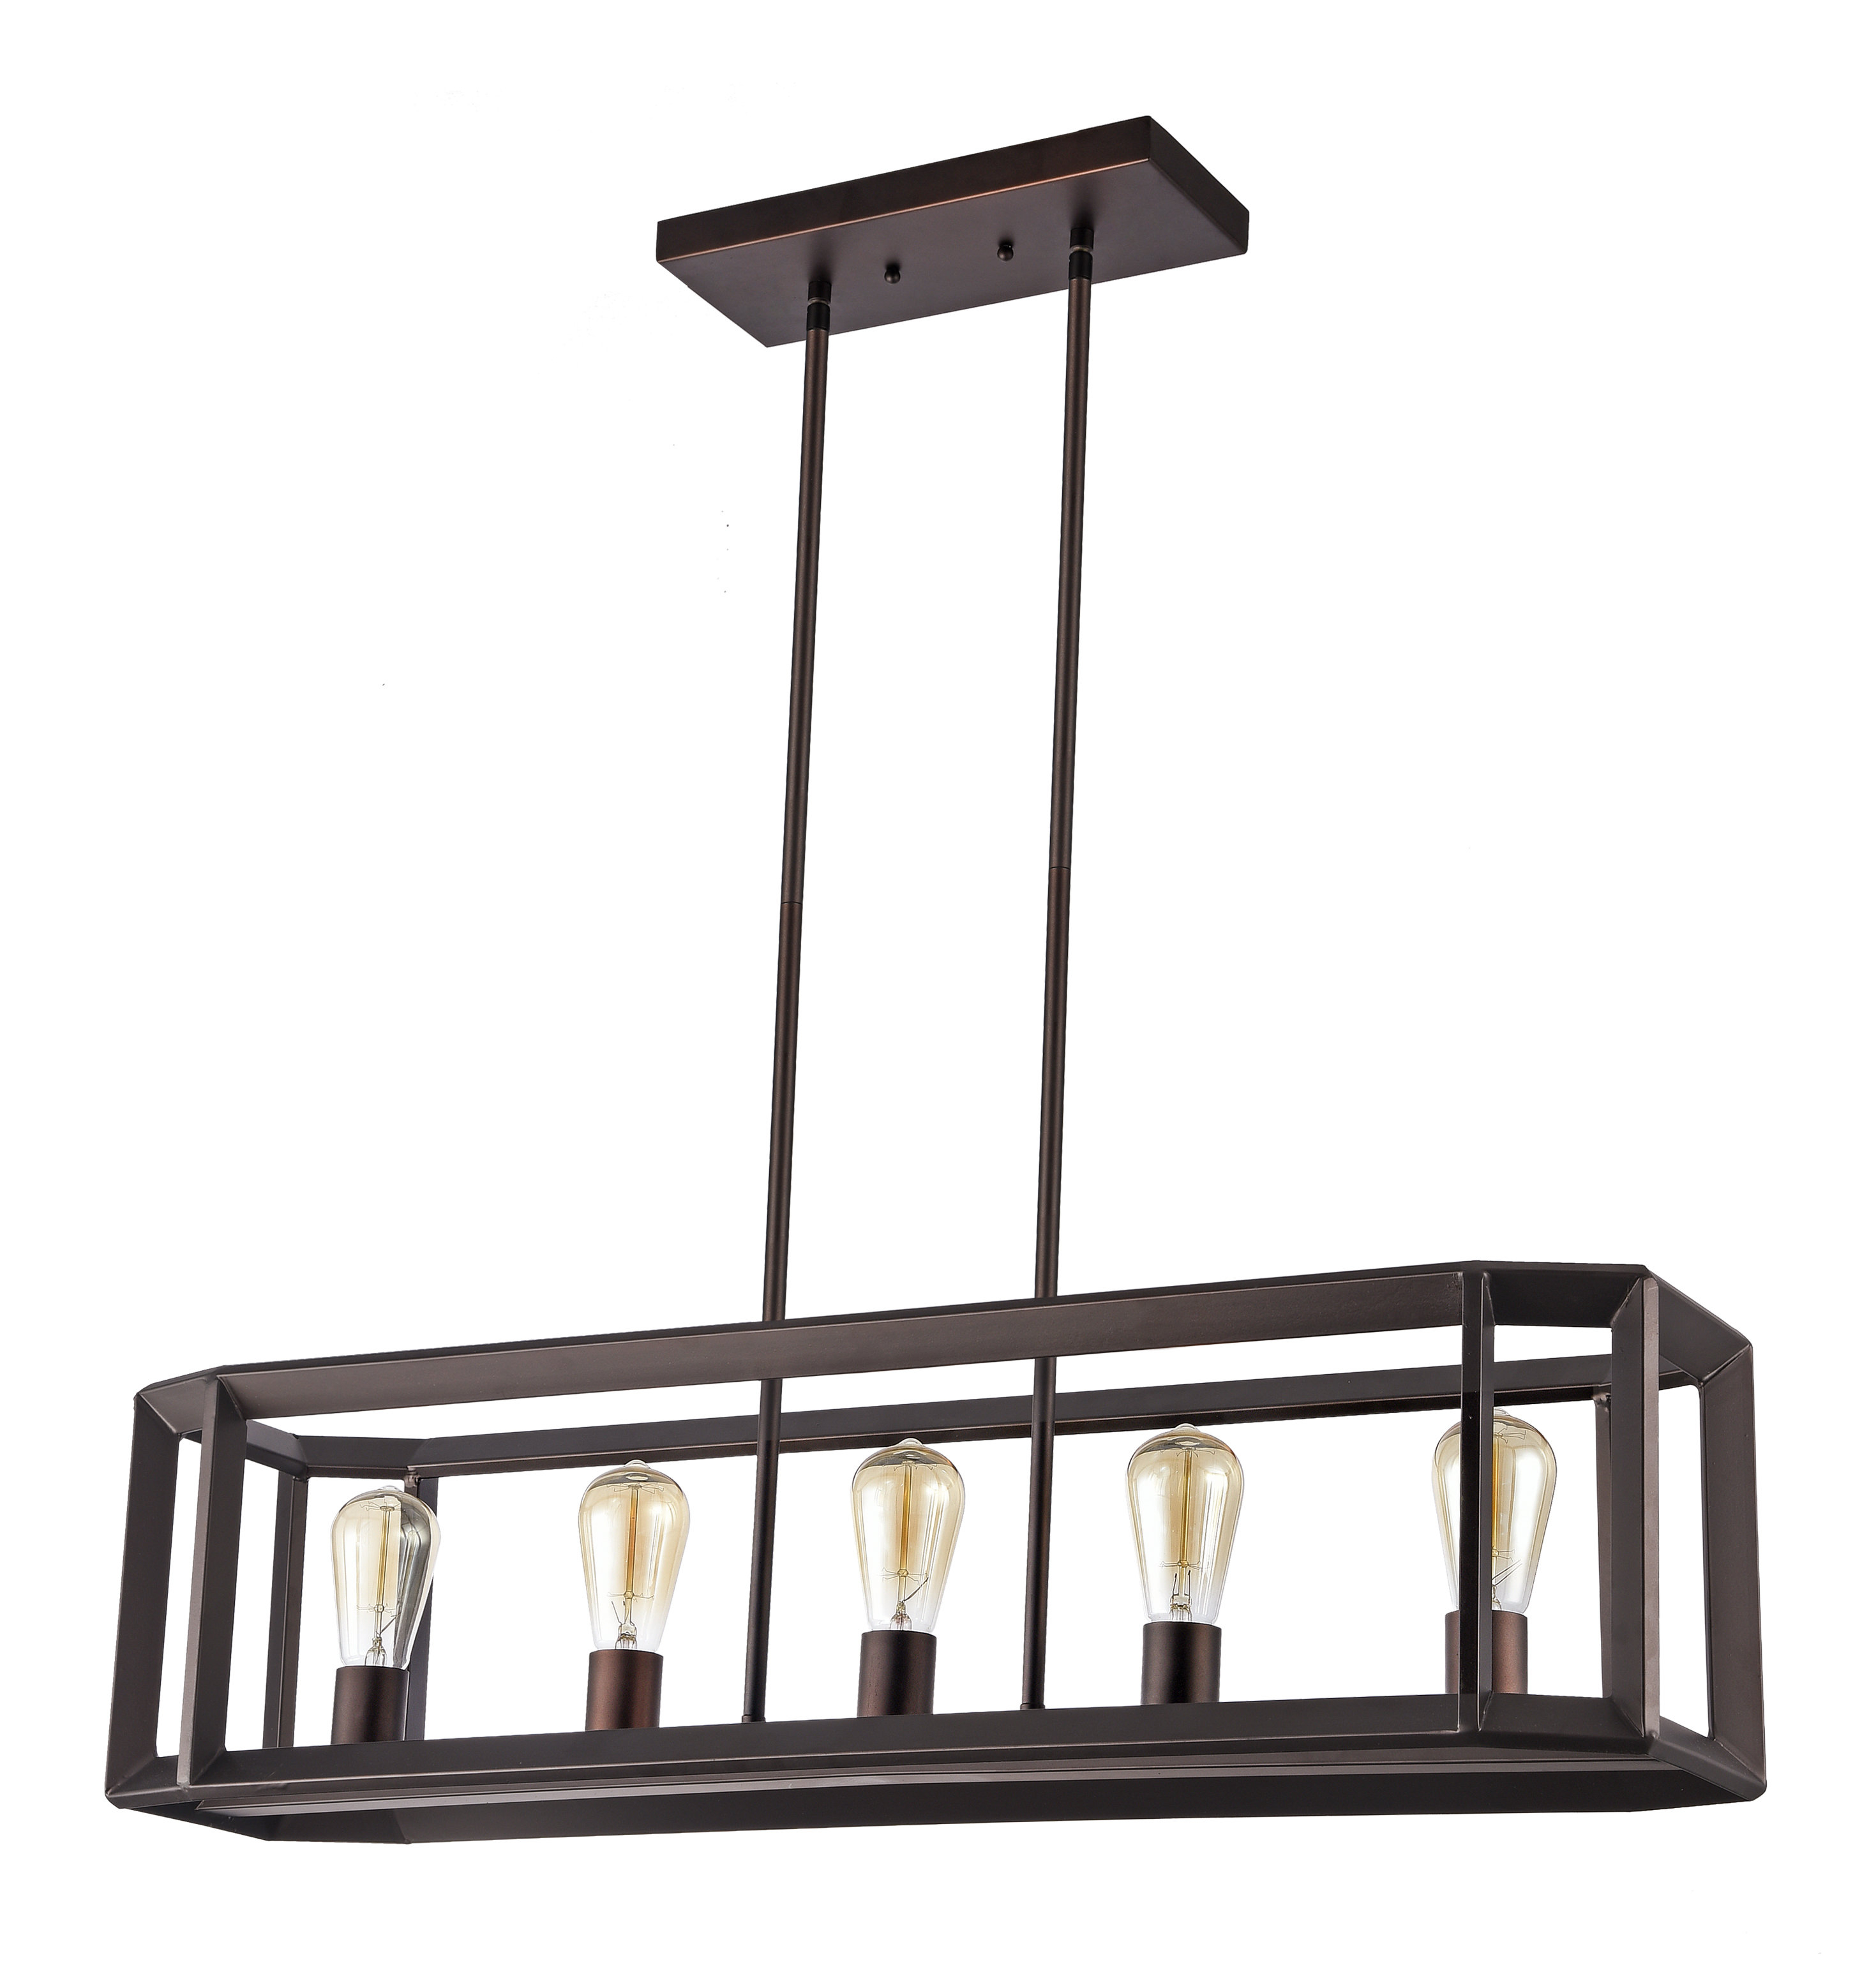 Preferred Bouvet 5 Light Kitchen Island Linear Pendant Regarding Sousa 4 Light Kitchen Island Linear Pendants (View 9 of 20)